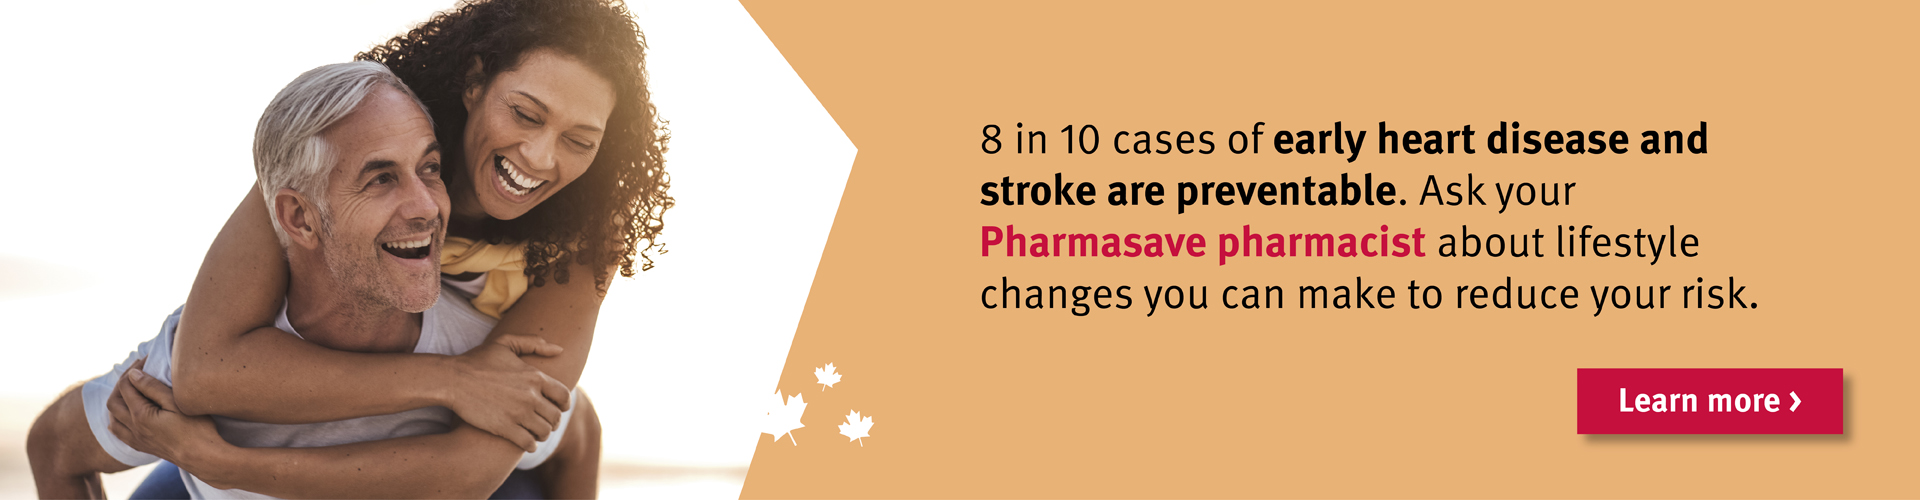 8 in 10 cases of early stroke and heart disease are preventable.